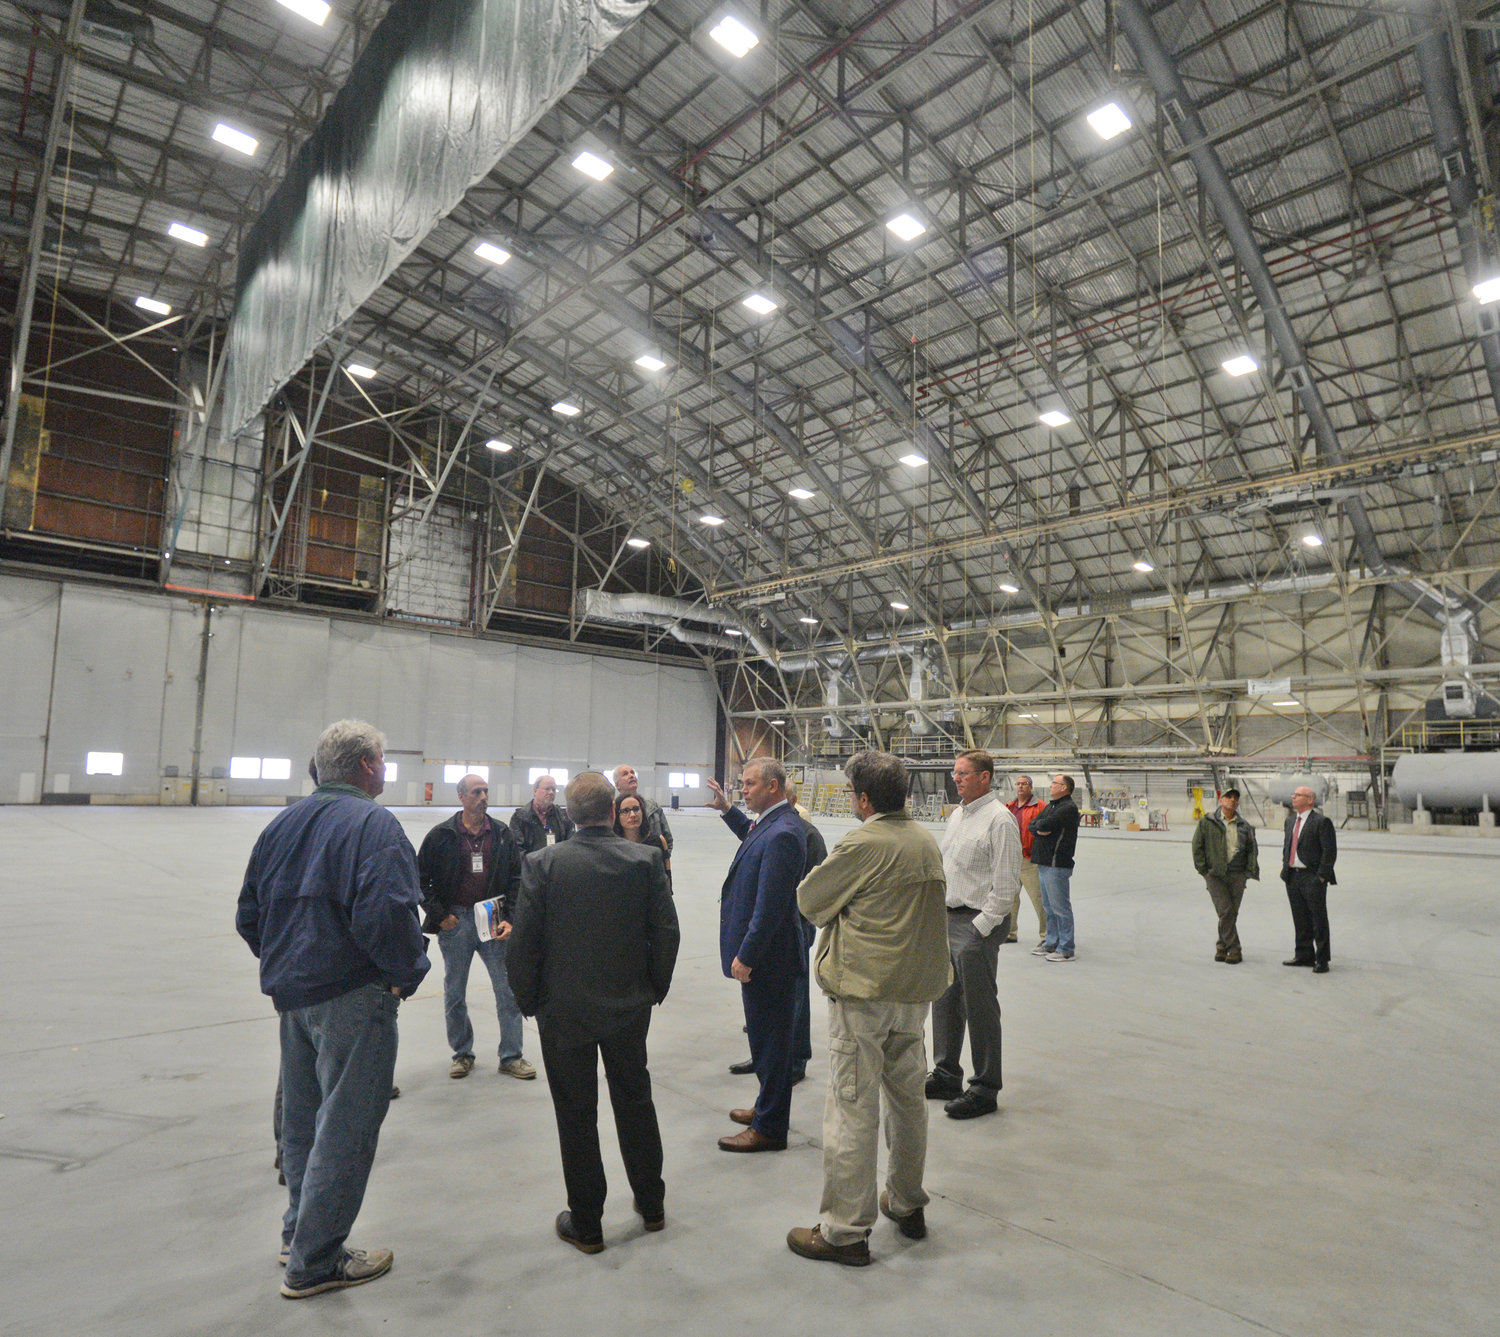 ROOM TO WORK — Aviation Commissioner Chad Lawrence talks with county legislators in the paint bay of building 101 at Griffiss International Airport. The former Air Force hangar was used to paint airplanes by a previous tenant company.